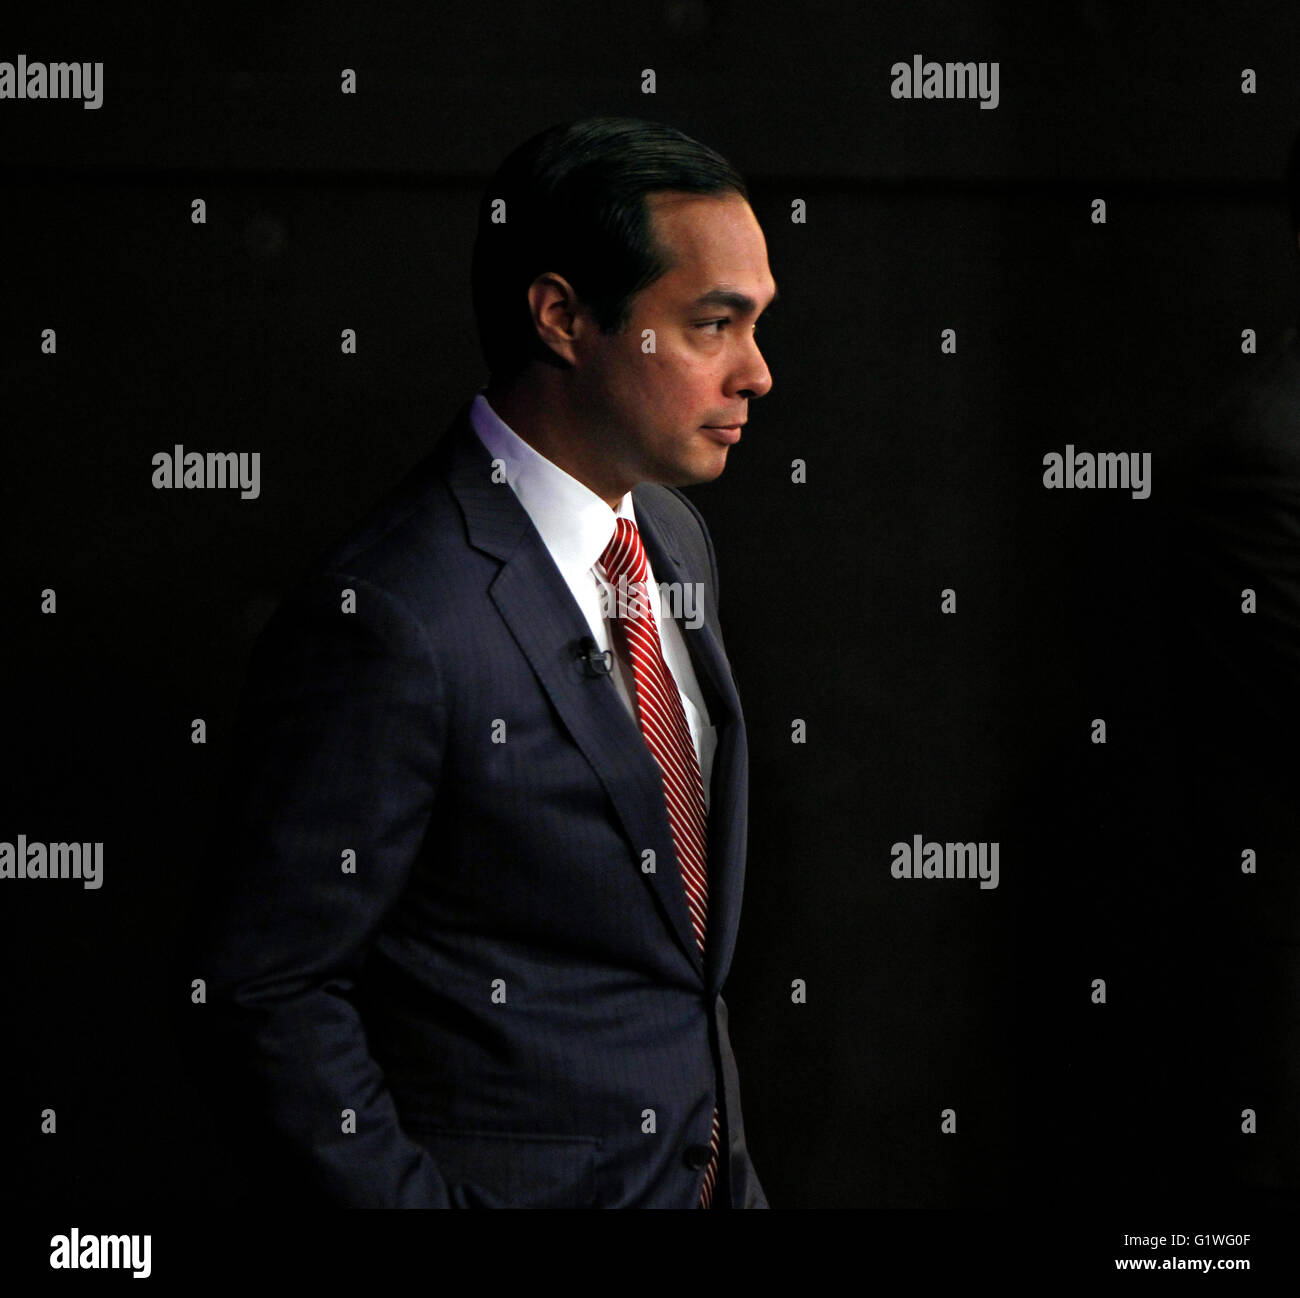 San Antonio Mayor Julian Castro waits backstage before a debate in San Antonio, Texas. Stock Photo